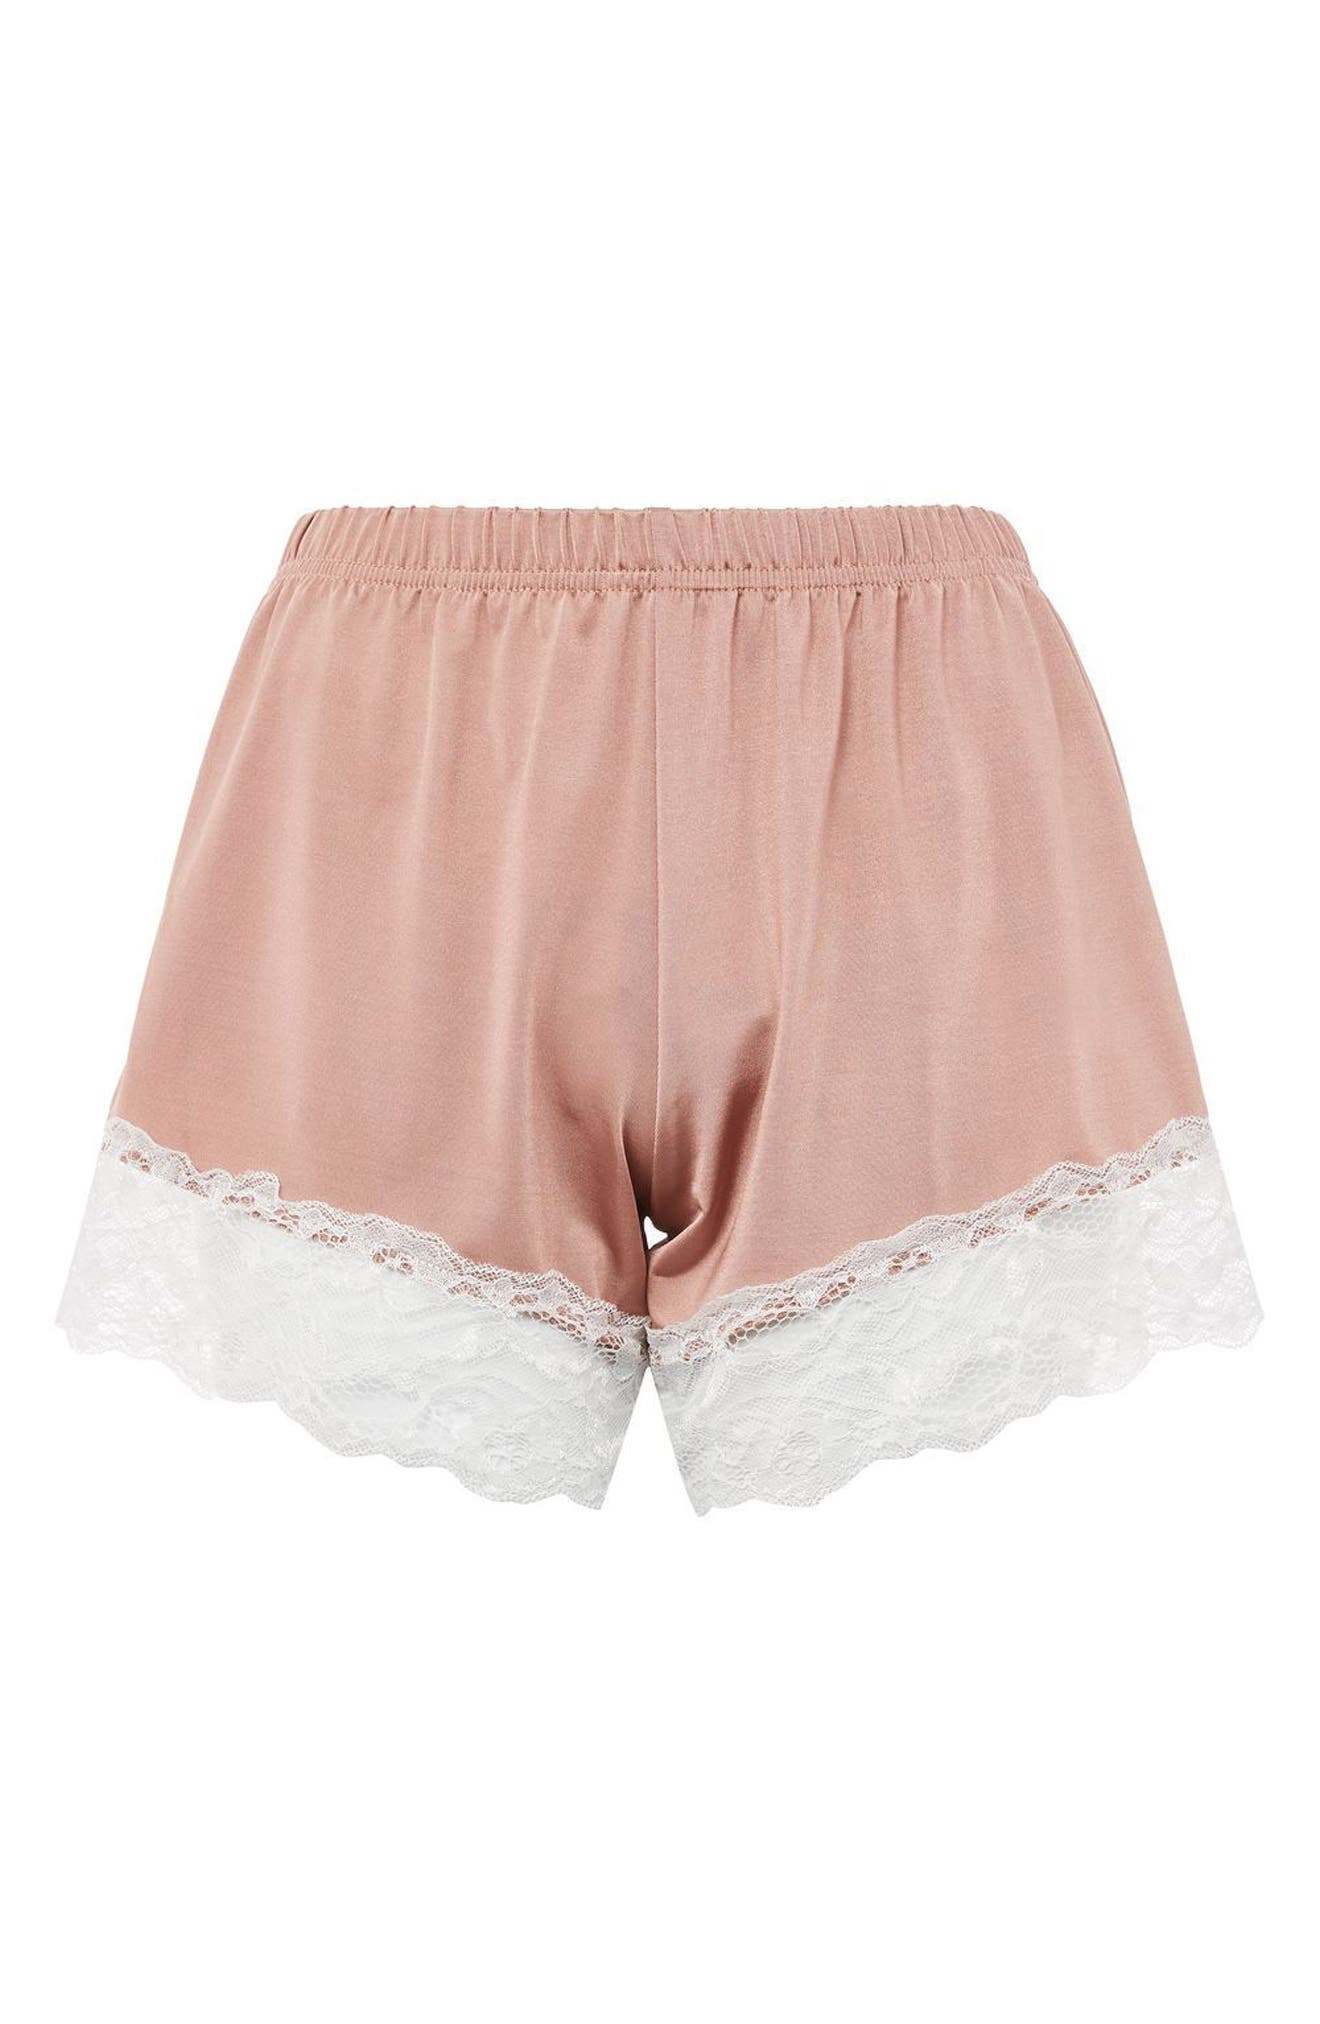 Satin & Lace Pajama Shorts,                             Alternate thumbnail 3, color,                             Nude